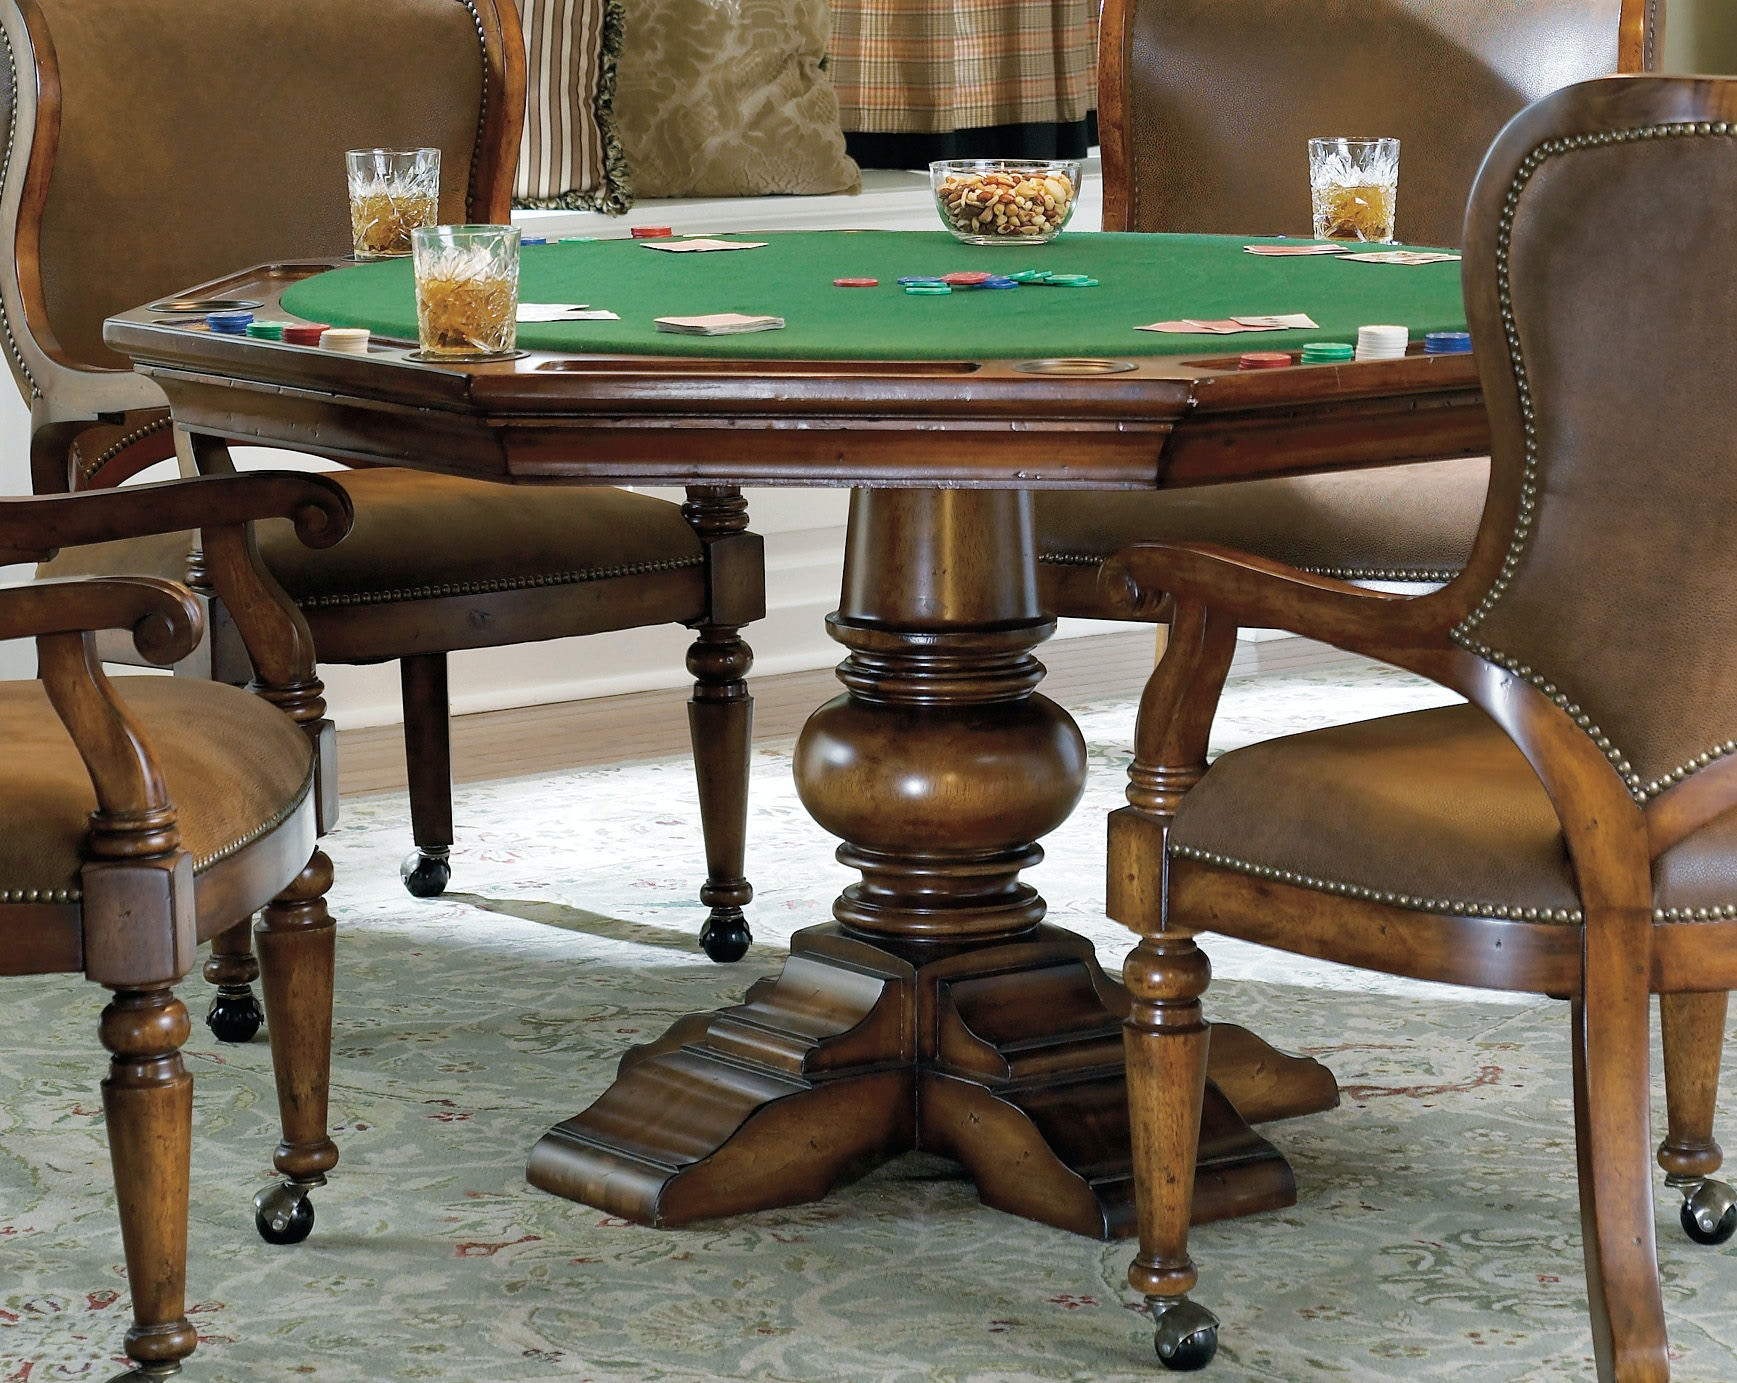 Hooker Furniture Waverly Place Reversible Top Poker Table 366 75 800